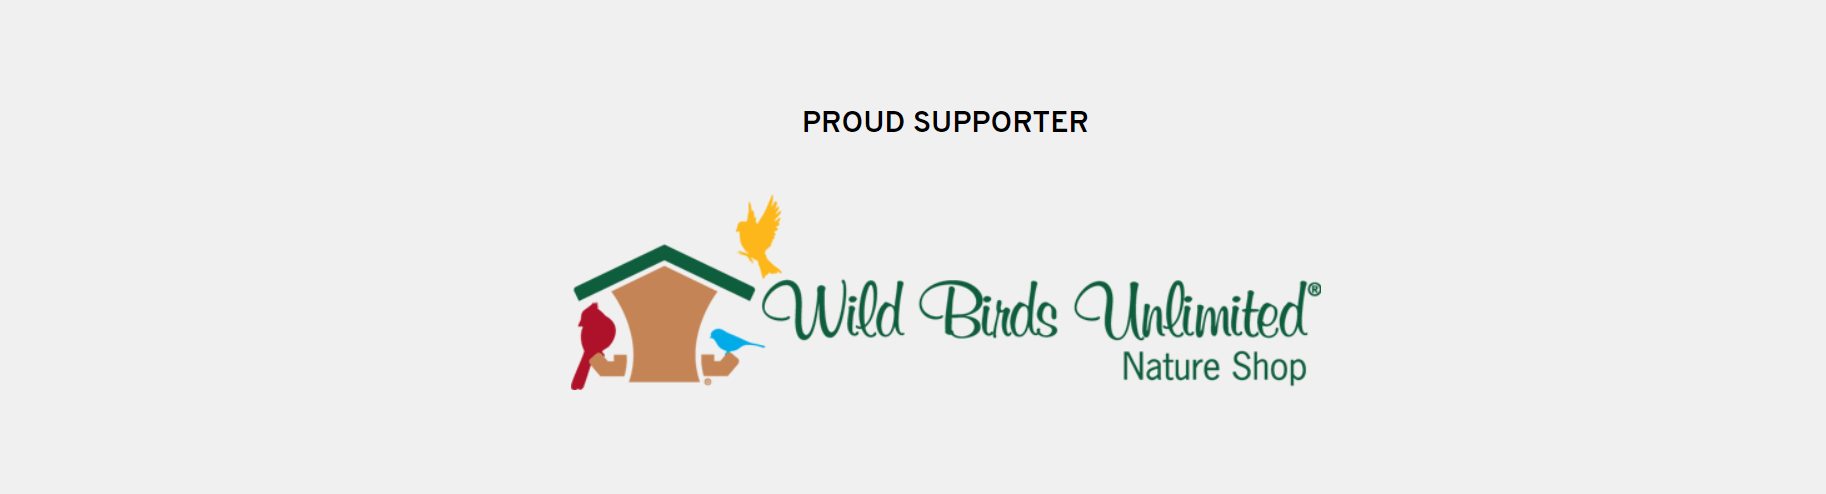 Link to Wild Birds Unlimited